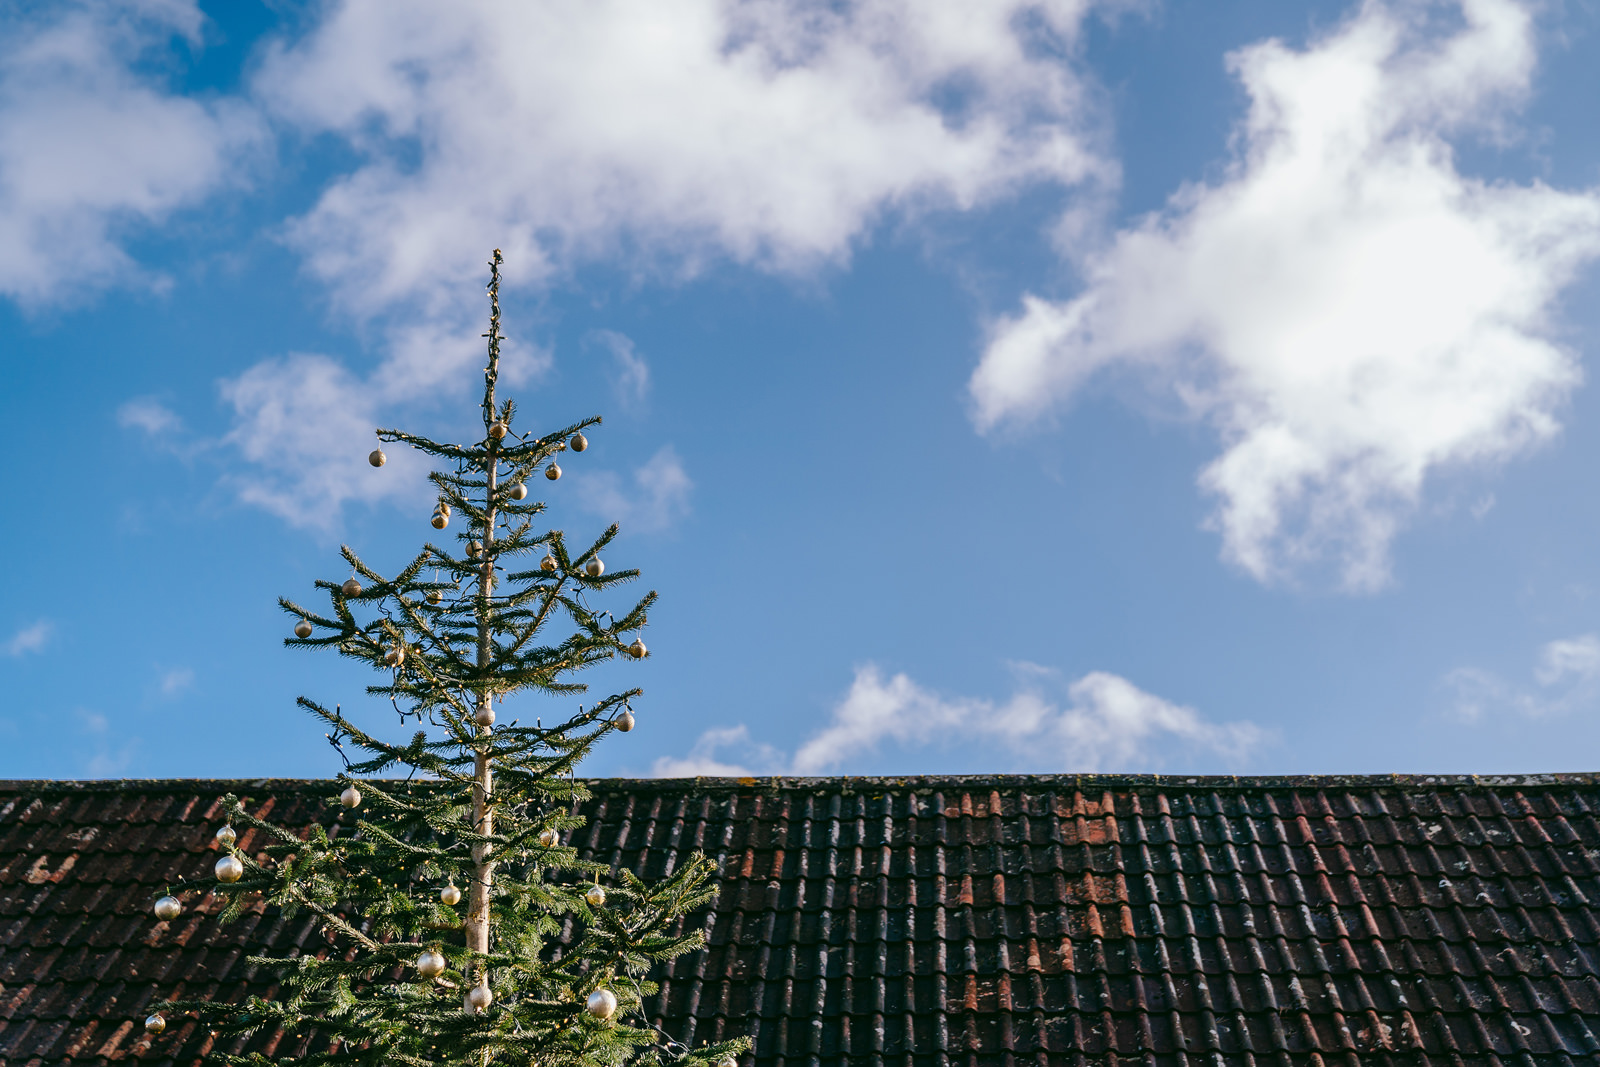 The top of a christmas tree above the barn roof